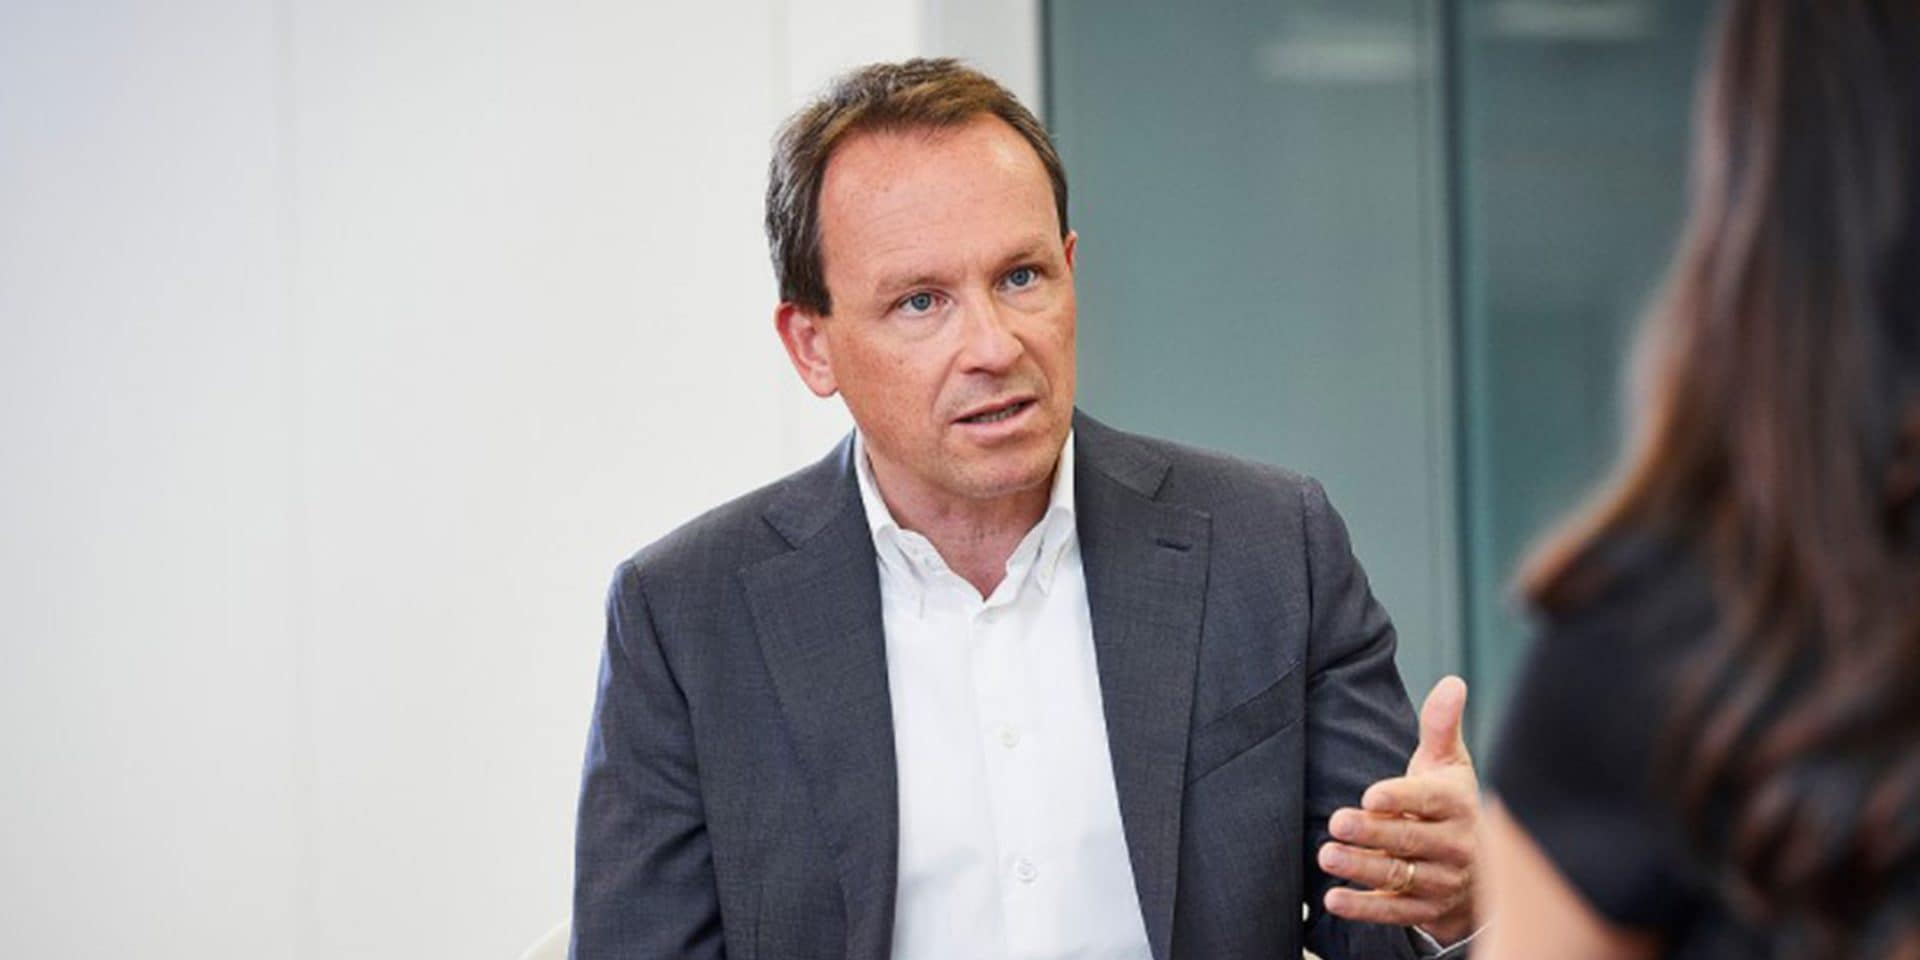 Christoph Loos, CEO